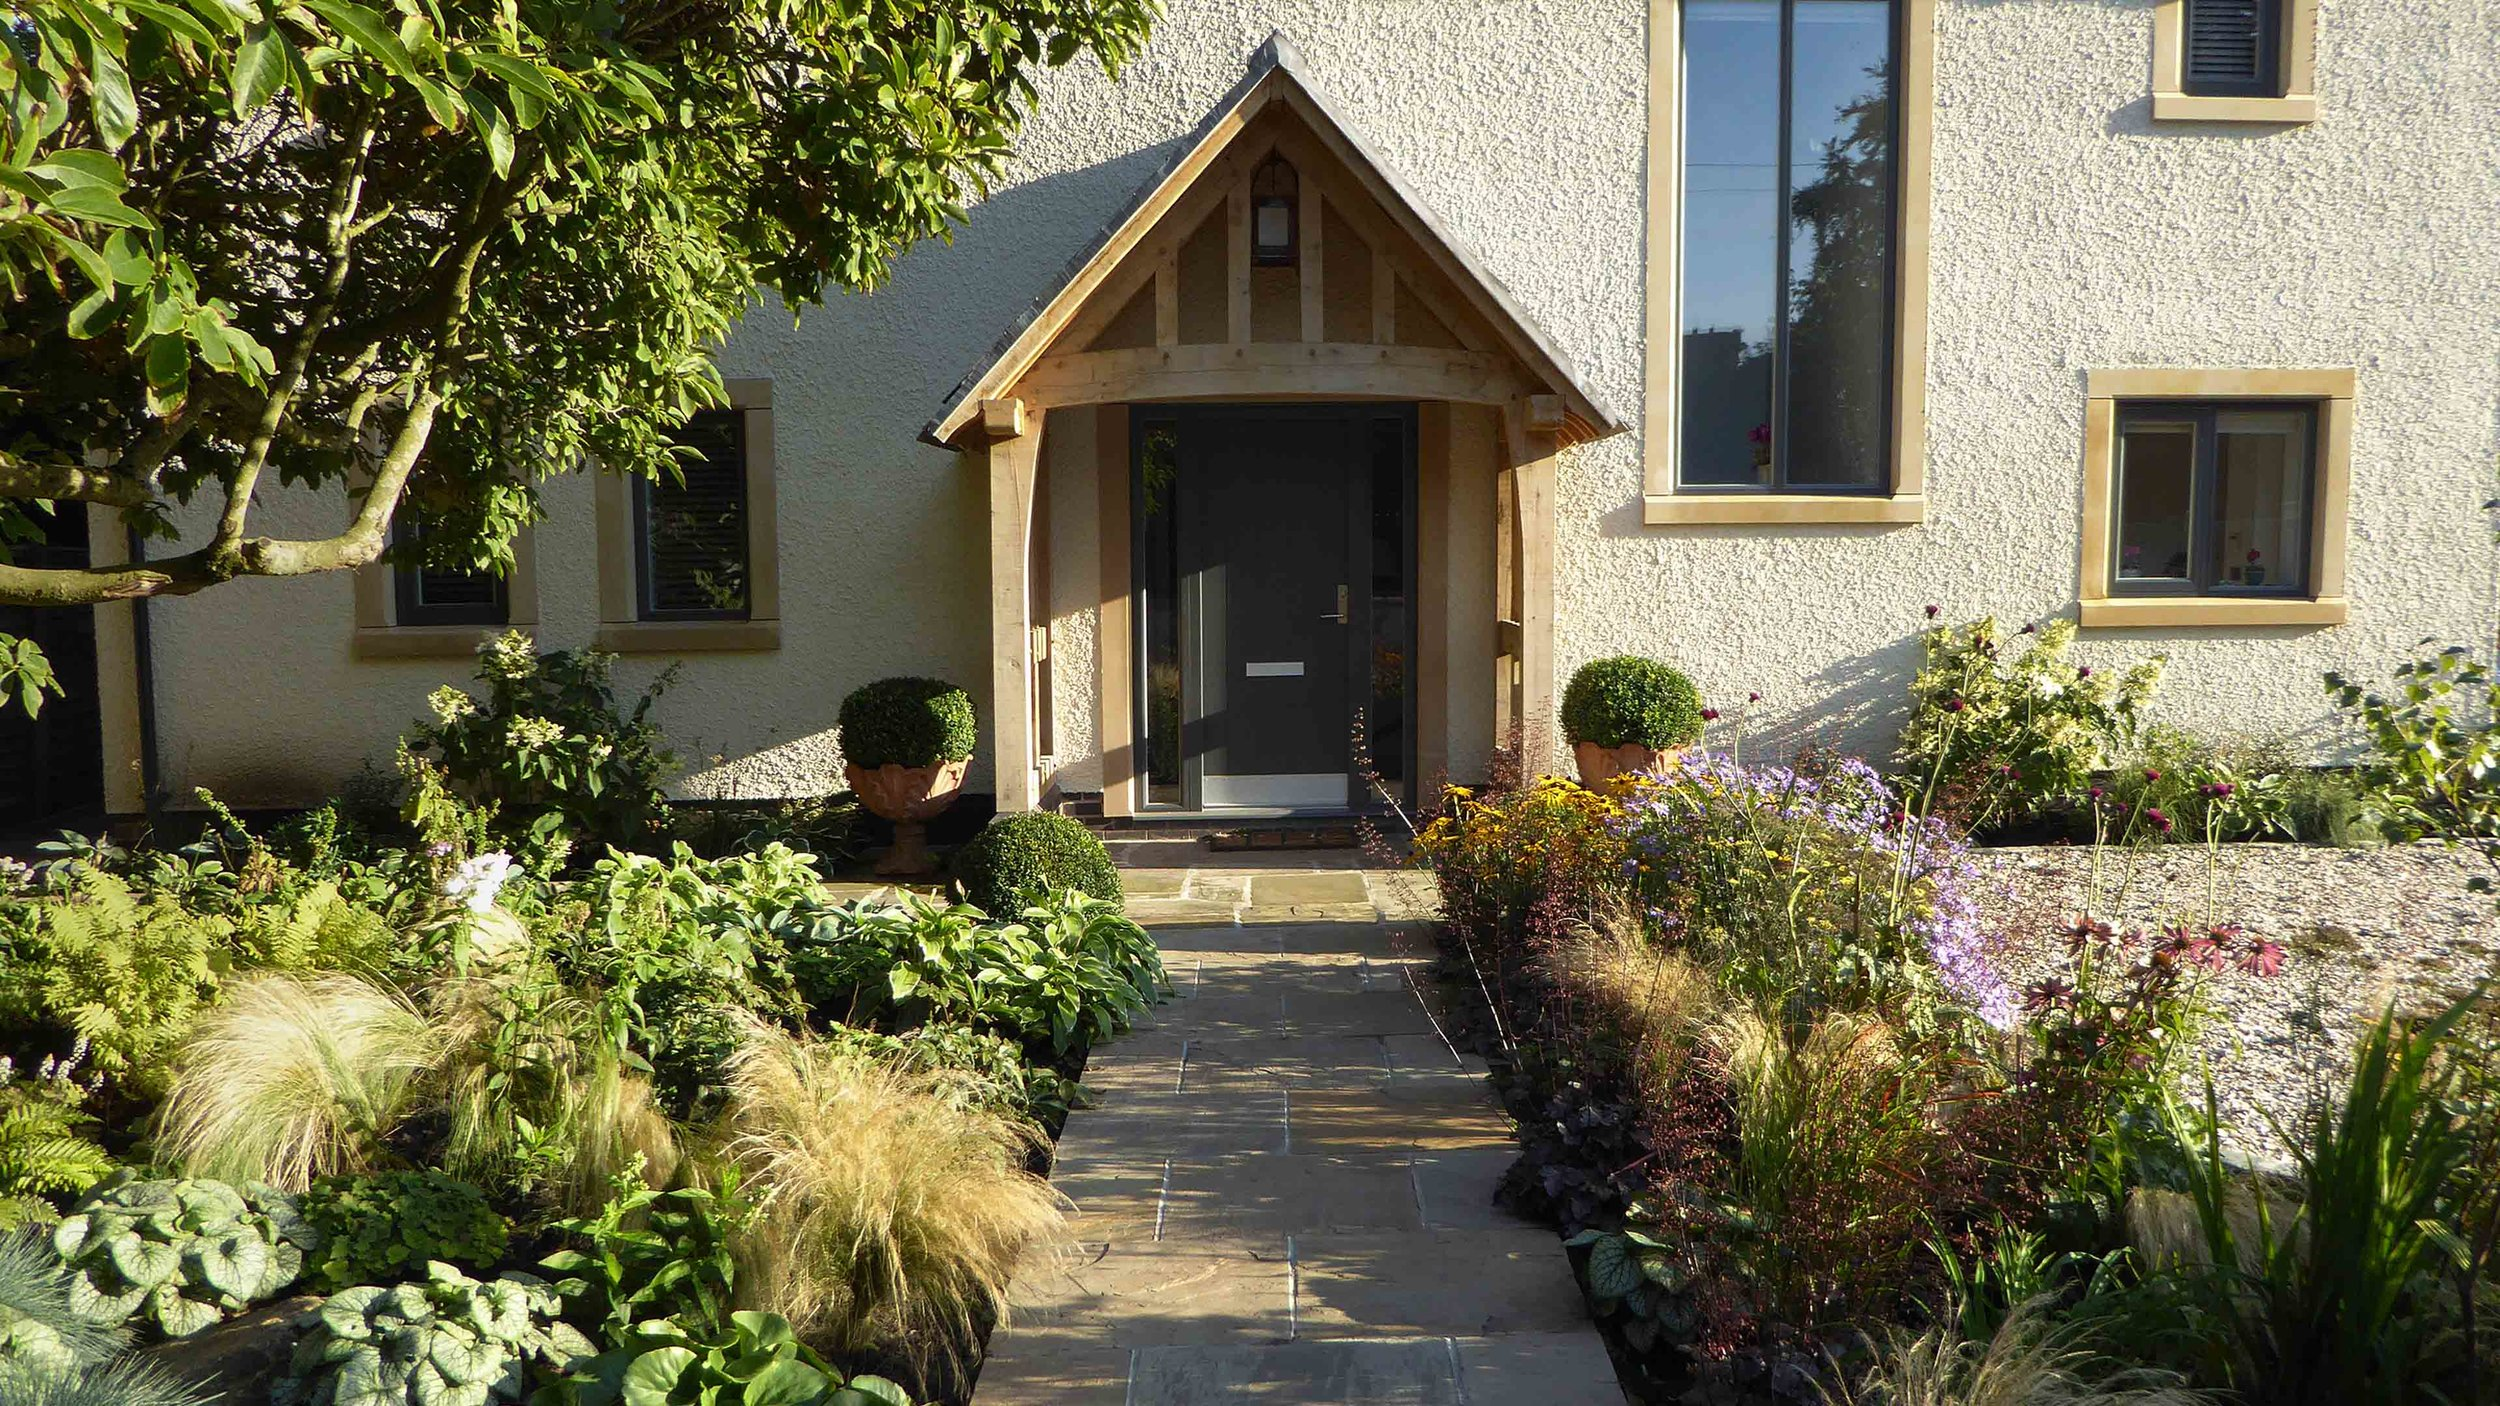 Cheshire Garden Design: The Sun and Shade Garden: Sun Anbd Shade Beds Split With Path